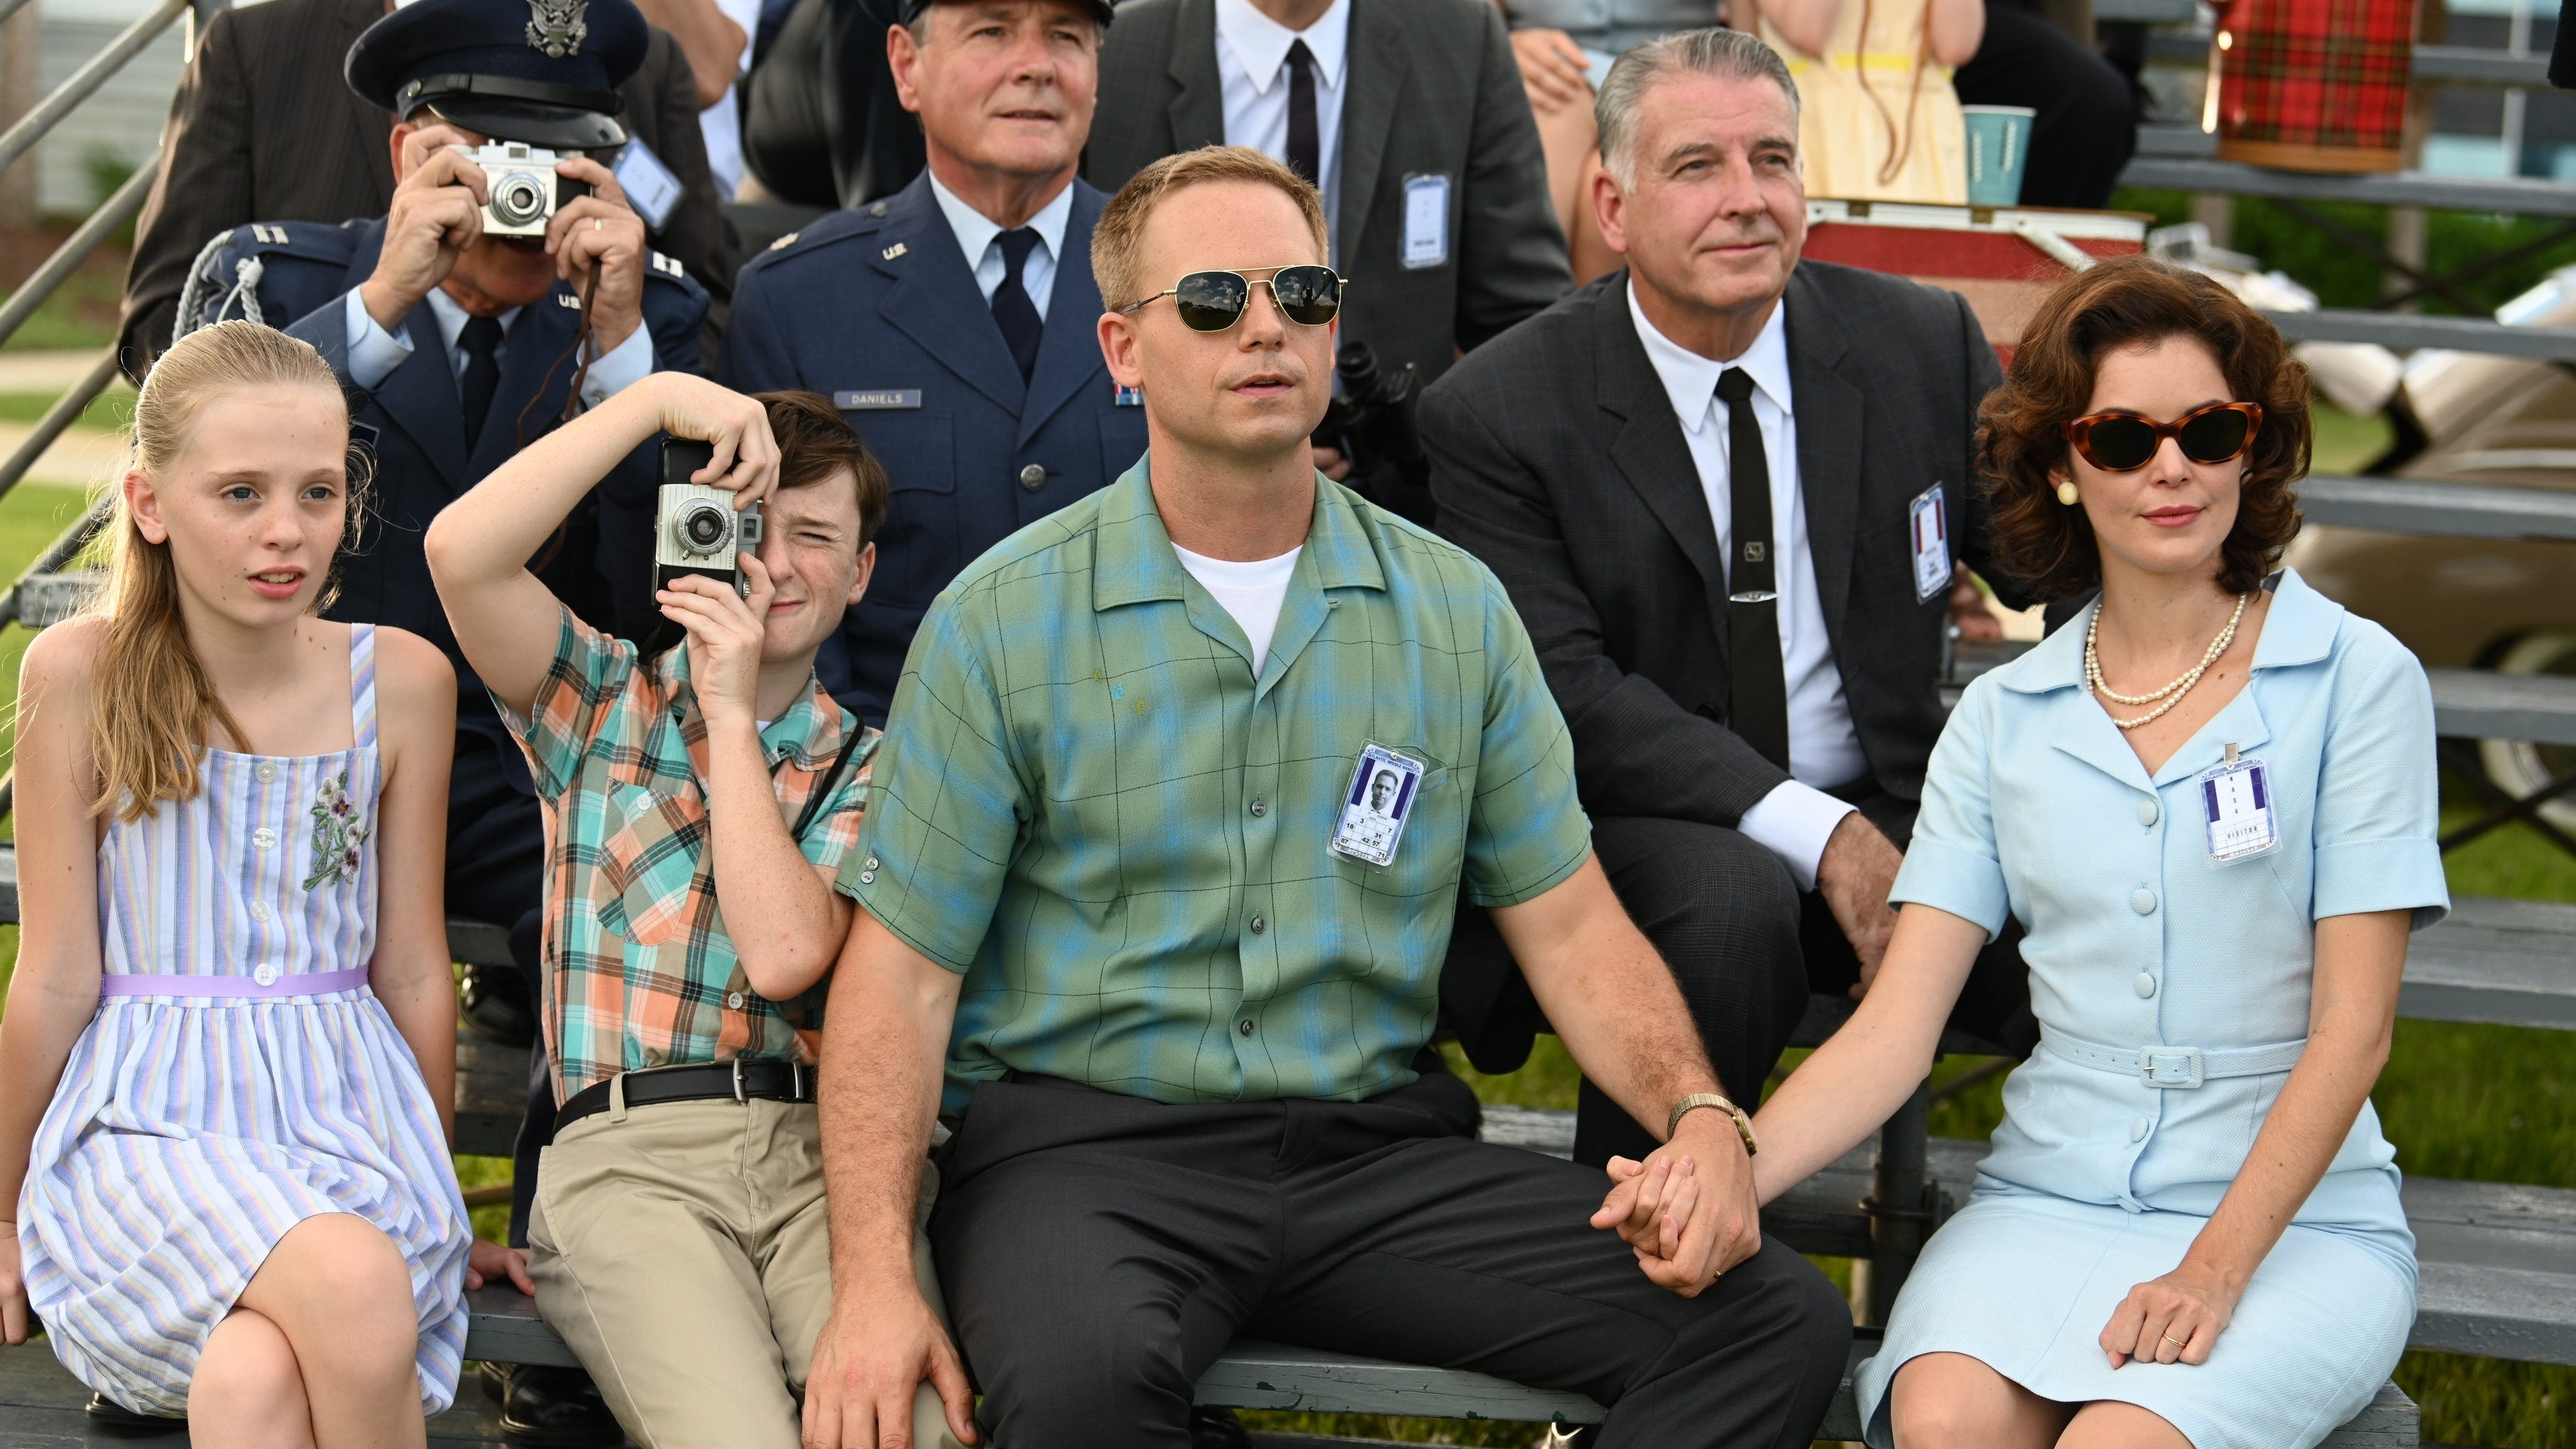 John Glenn played by Patrick J. Adams and Annie Glenn played by Nora Zehetner sit with their children watching the launch of a test rocket in National Geographic's THE RIGHT STUFF streaming on Disney+. (National Geographic/Gene Page)